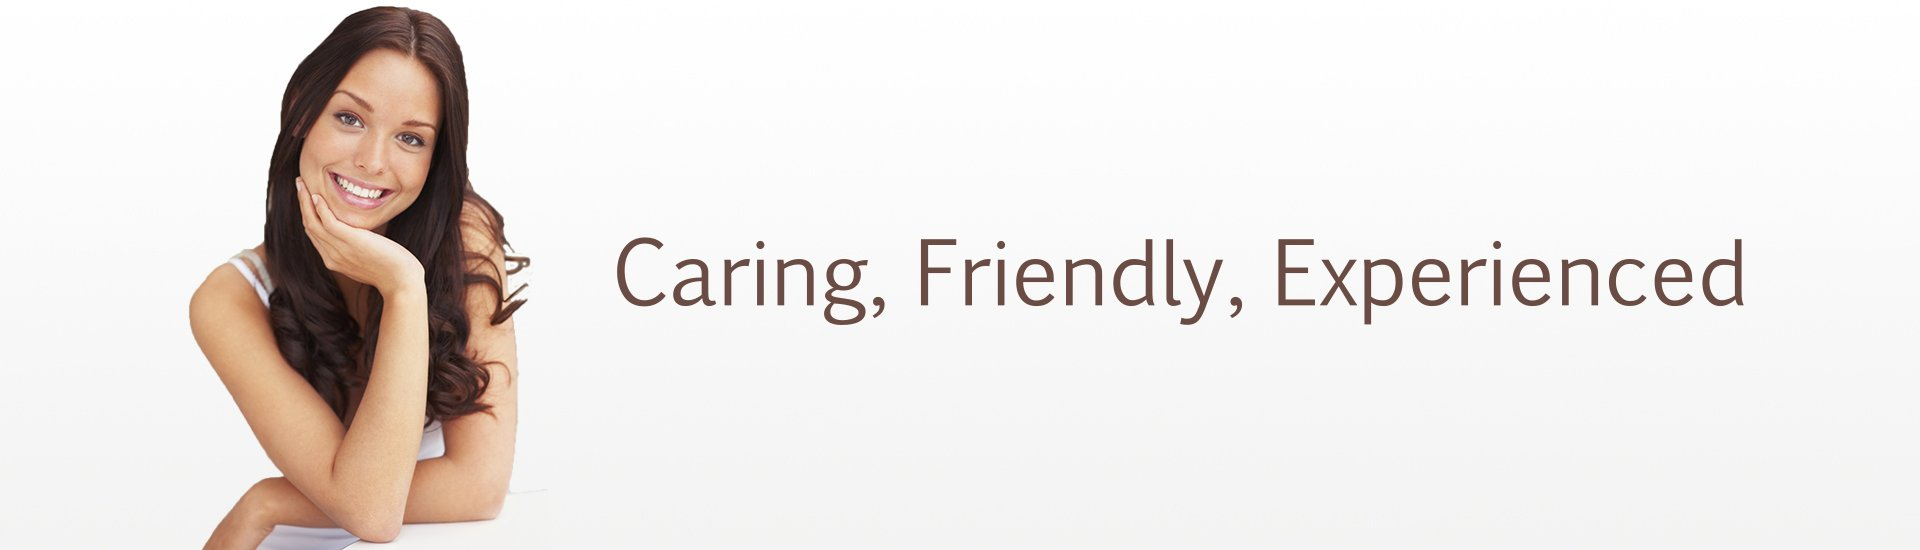 Erbsville Dental is Caring Friendly and Experienced